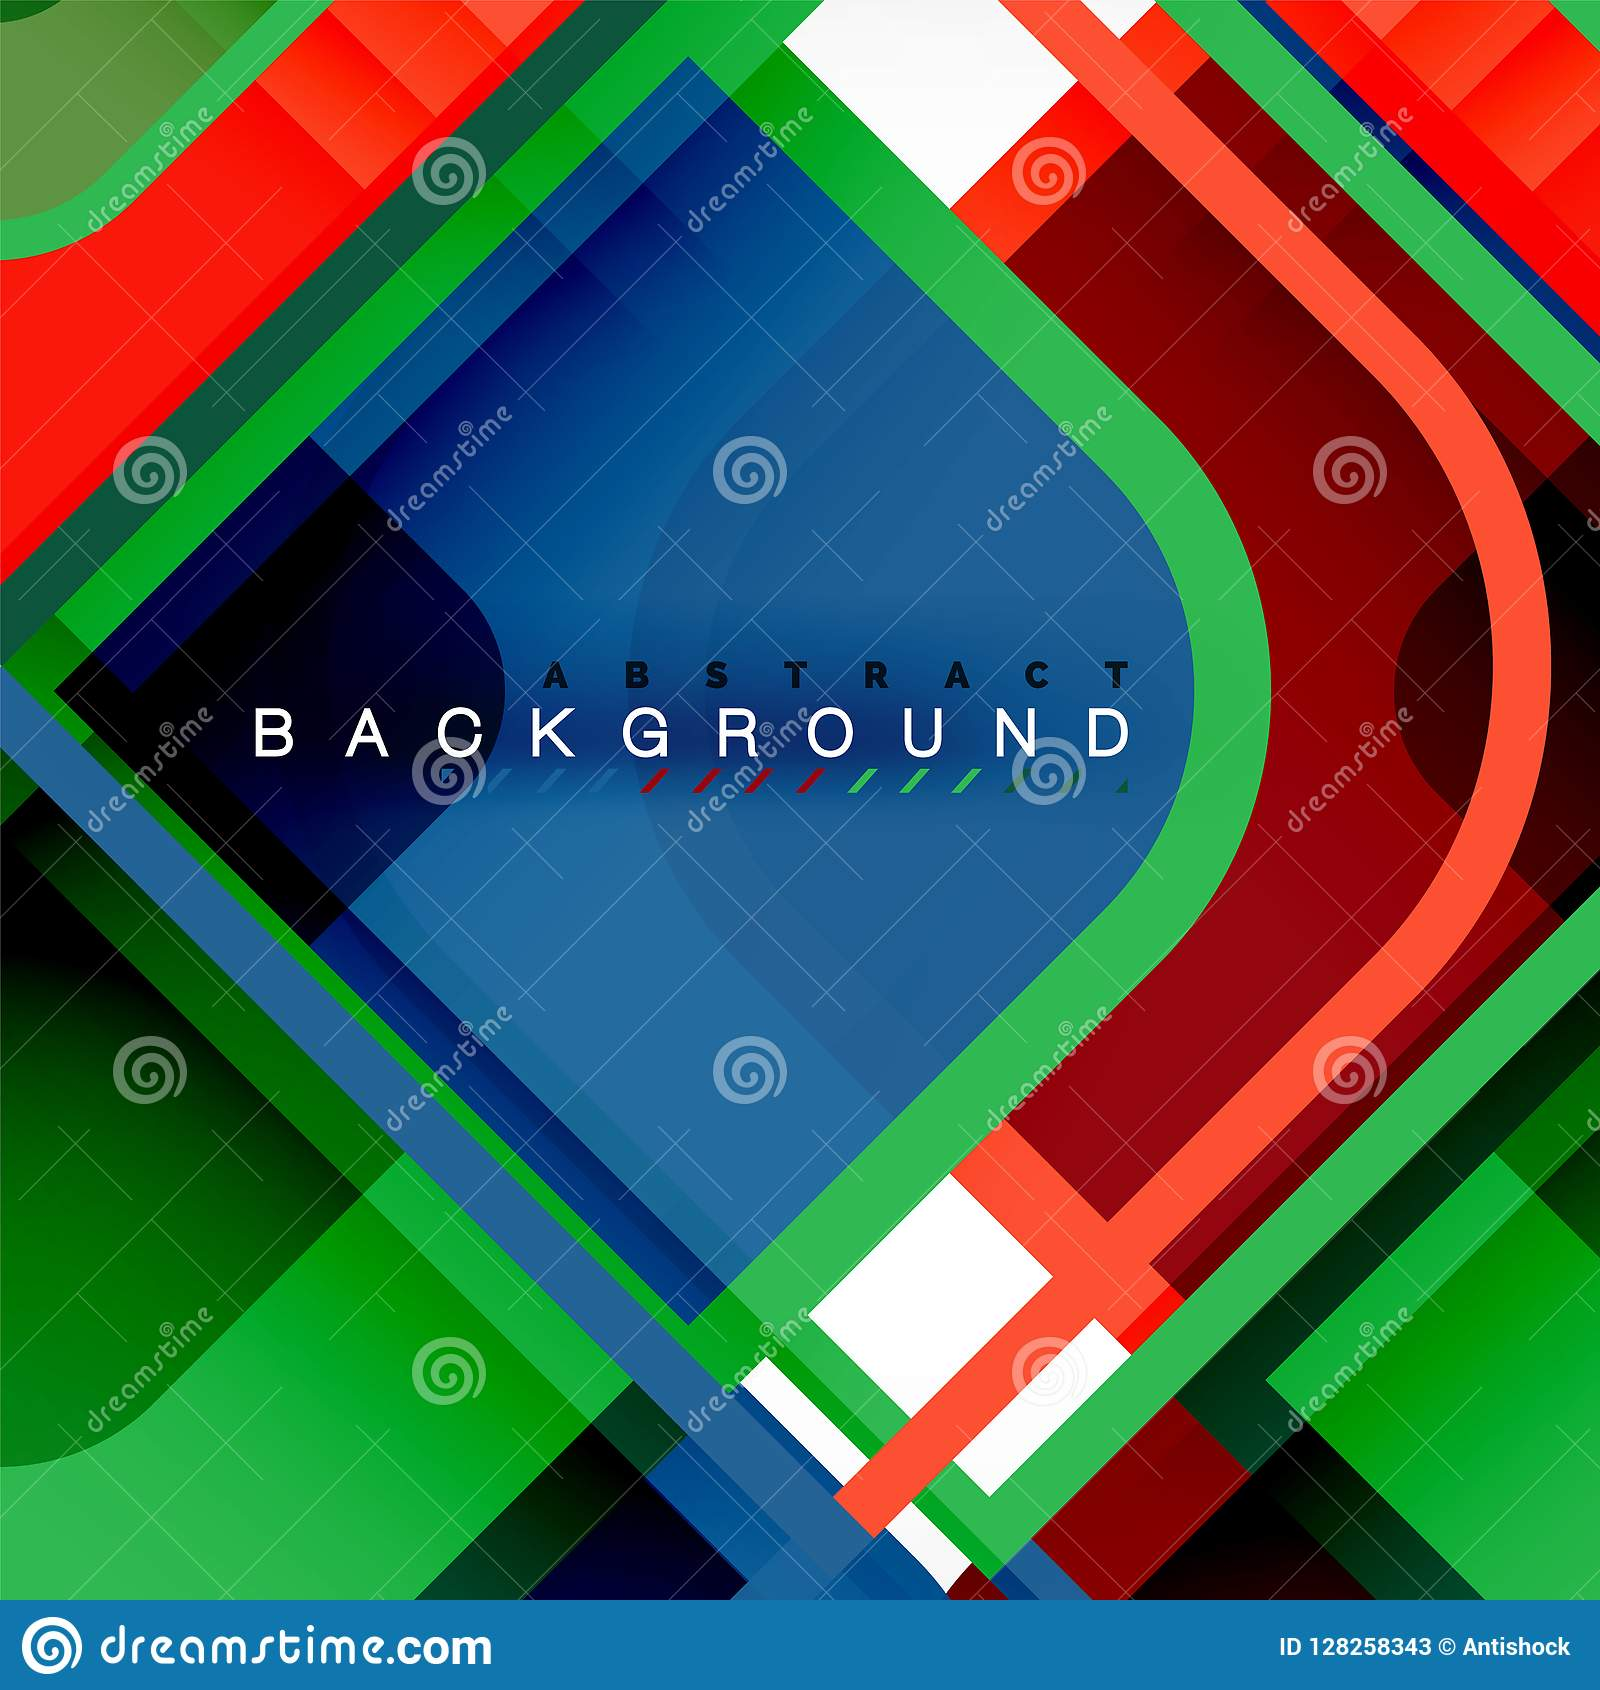 square geometric abstract background paper art design for cover